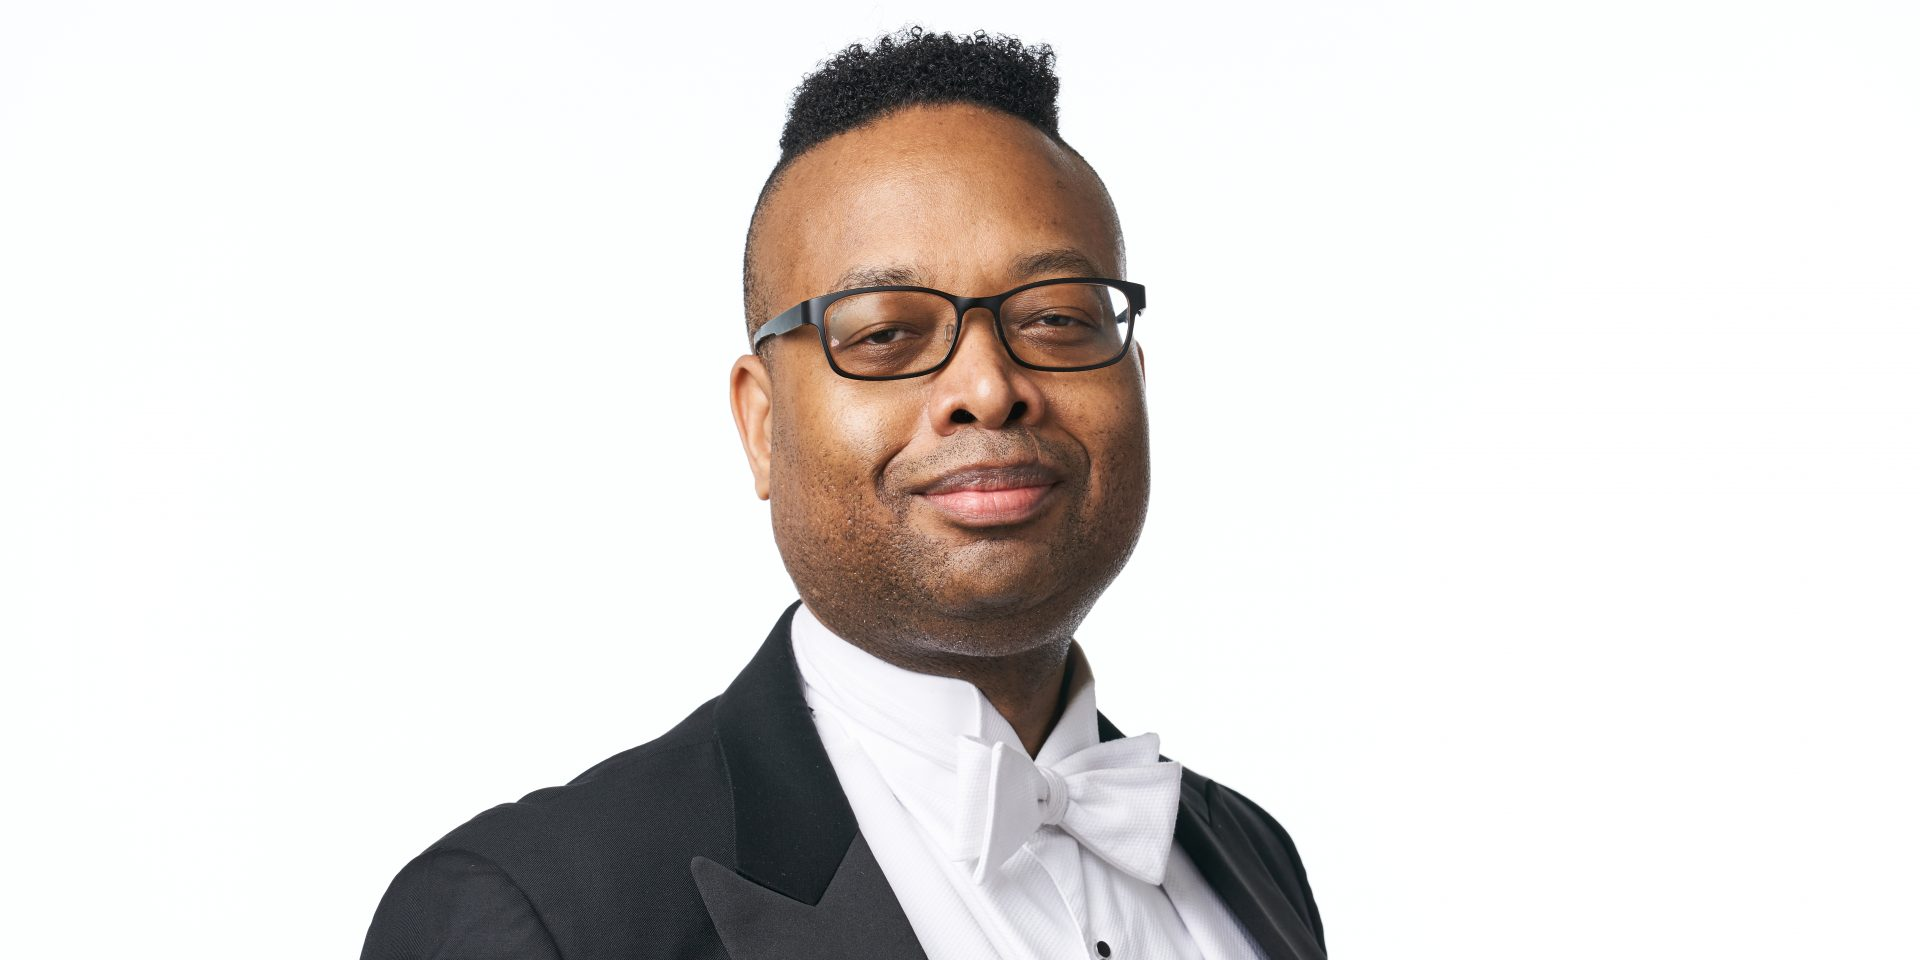 RSNO PRINCIPAL TIMPANI PAUL PHILBERT AWARDED MBE IN QUEEN'S BIRTHDAY HONOURS LIST